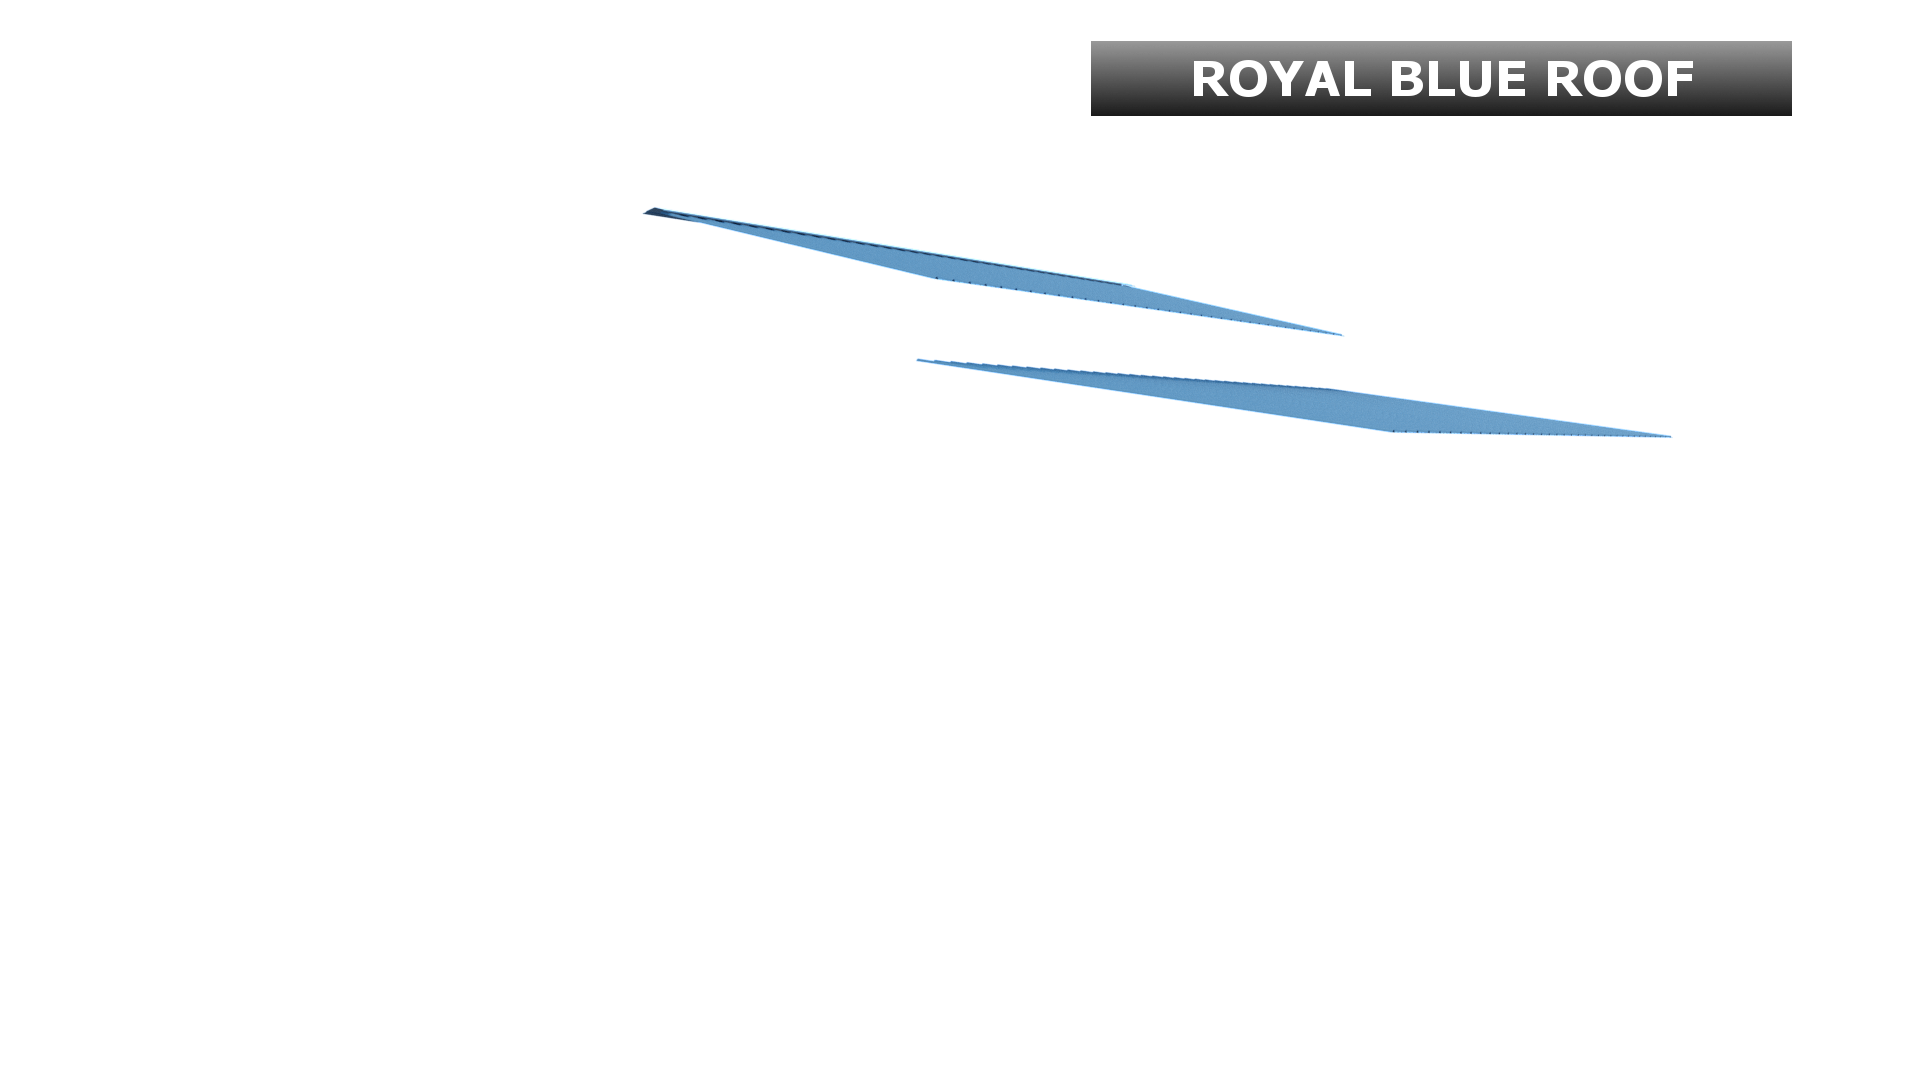 ROYAL BLUE ROOF